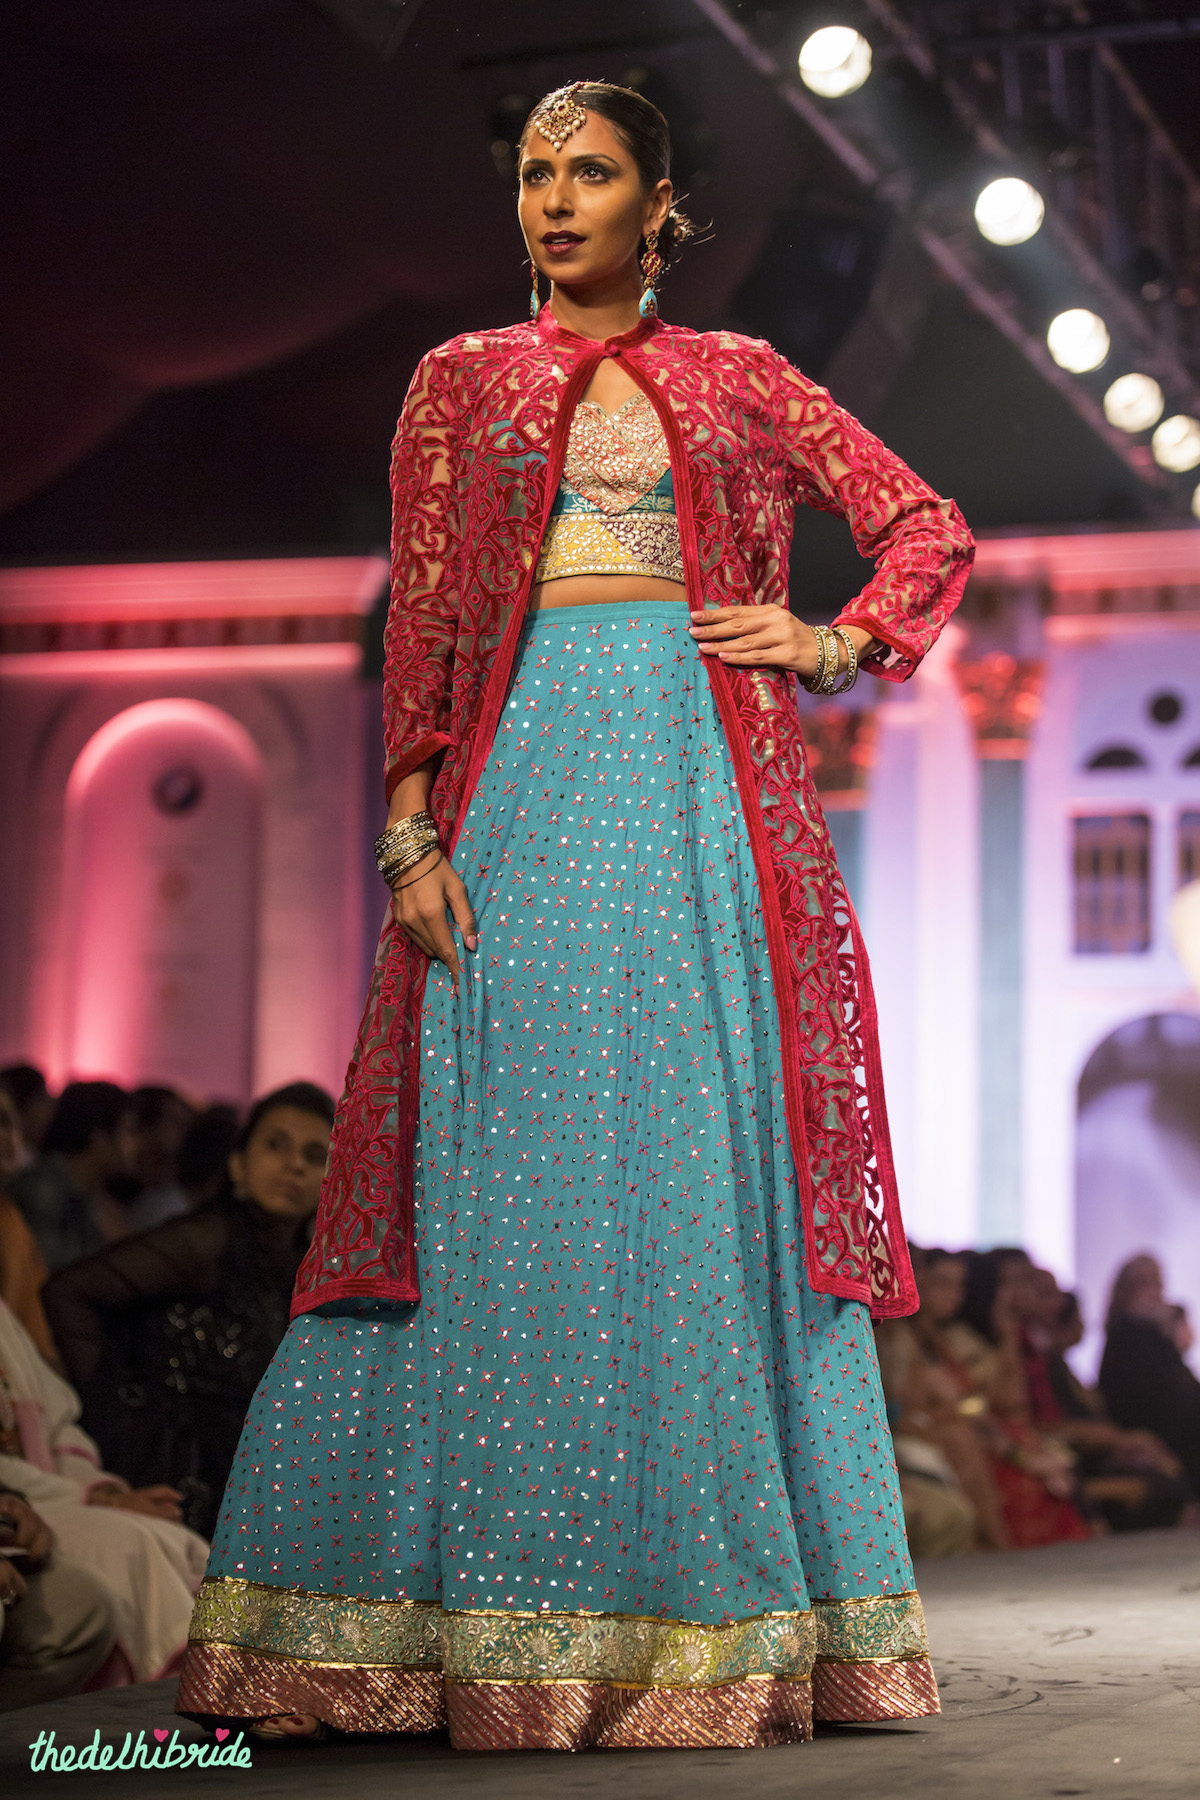 Meera & Muzaffar Ali at India Bridal Fashion Week 2014 – An Indian ...